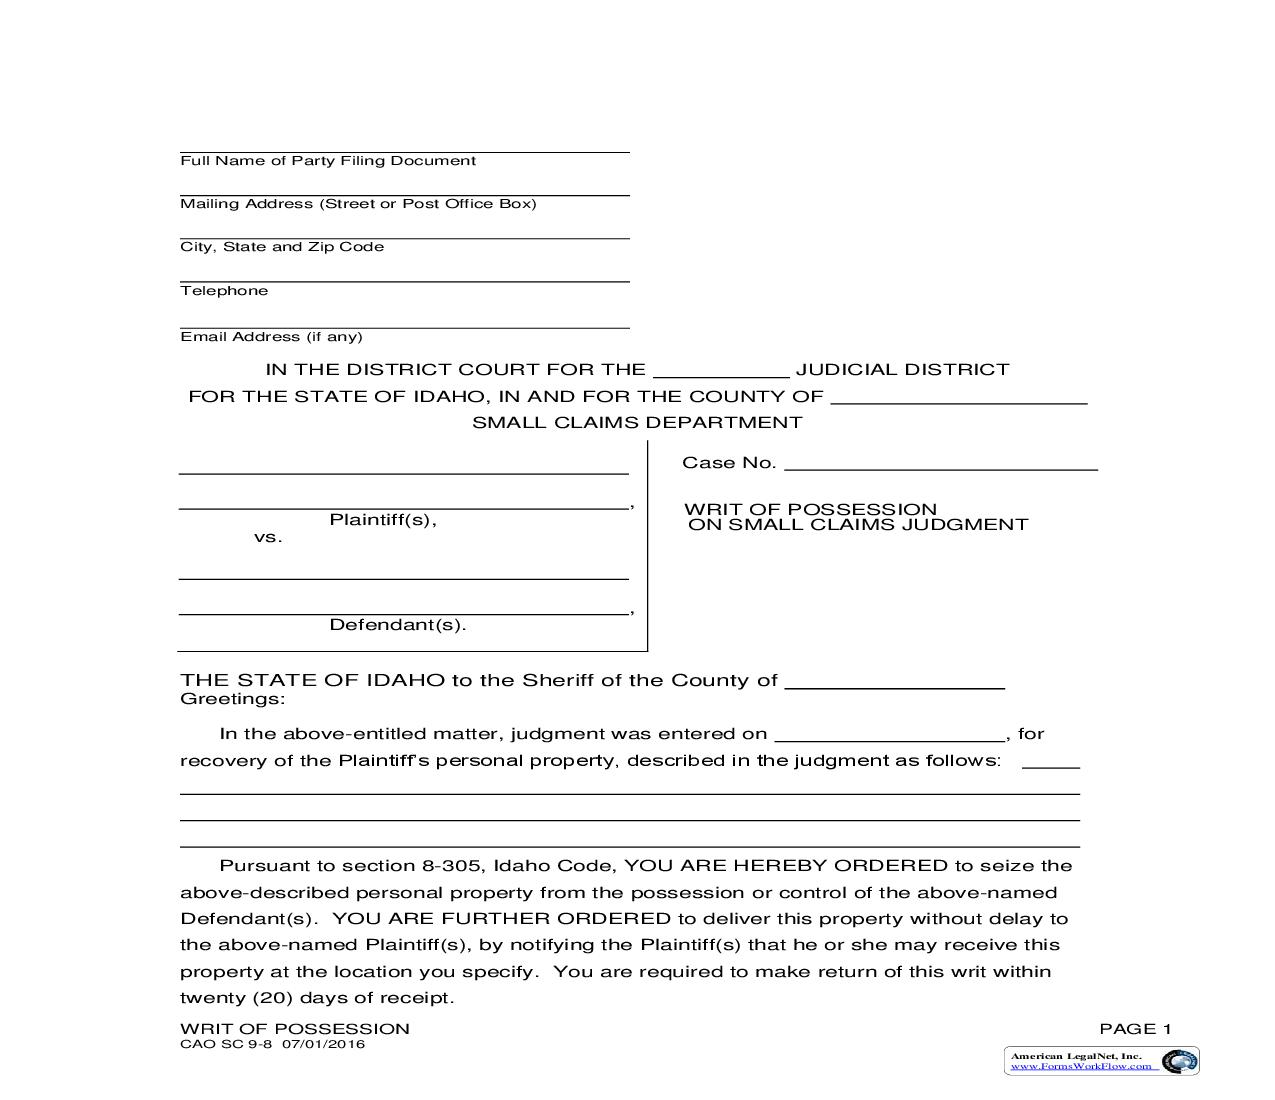 Writ Of Possession On Small Claims Judgment {CAO SC 9-8} | Pdf Fpdf Doc Docx | Idaho